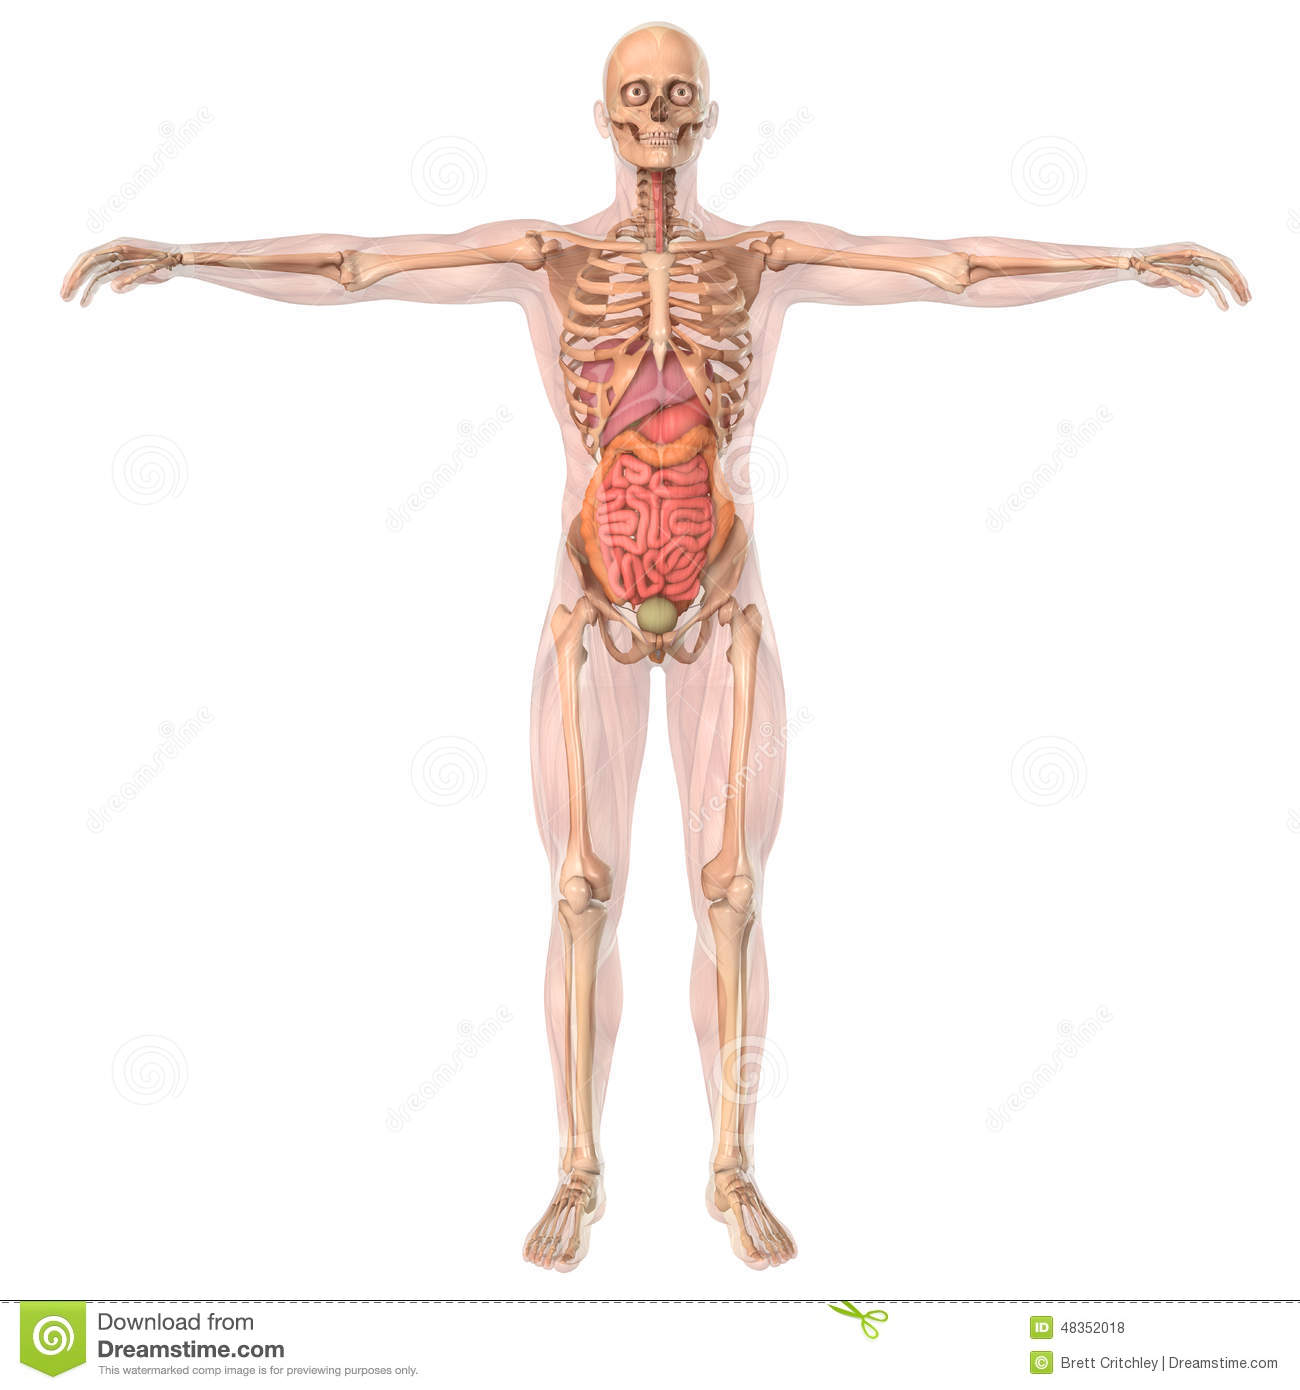 Human Skeleton And Organs Diagram House Wiring Diagram Symbols